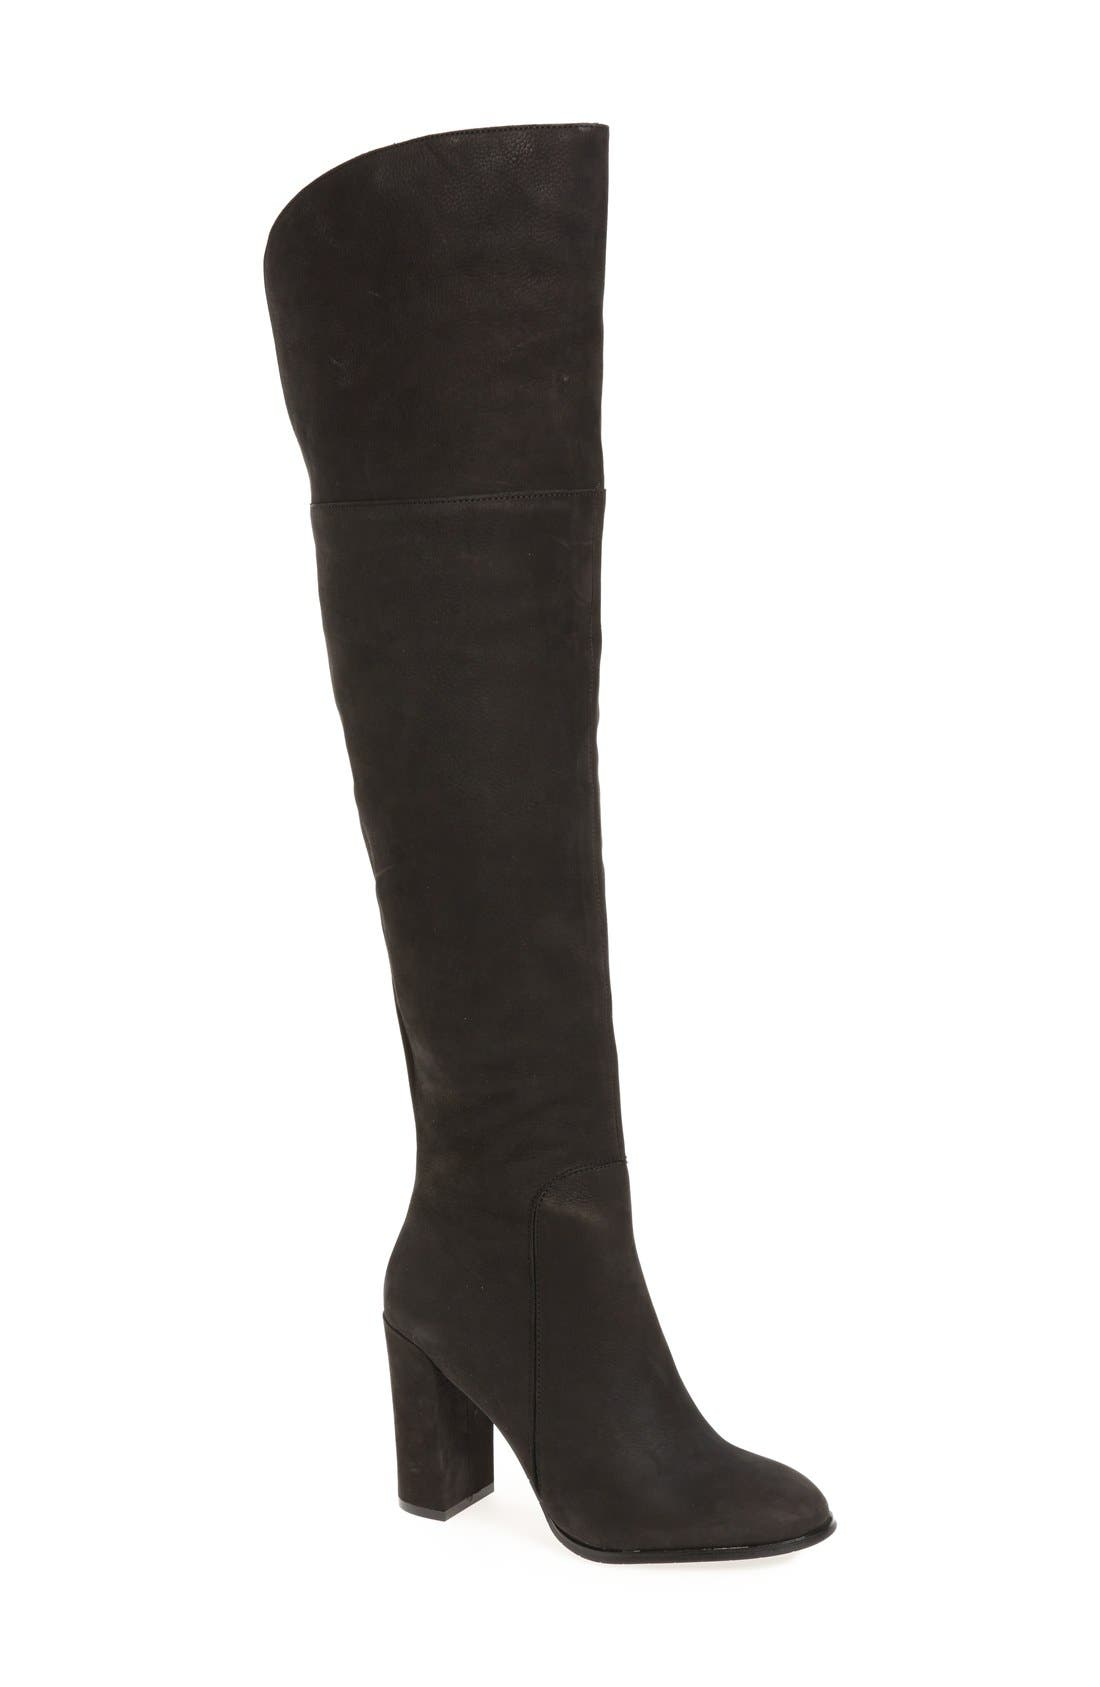 Over the Knee Jack Boot,                         Main,                         color, Black Nubuck Leather